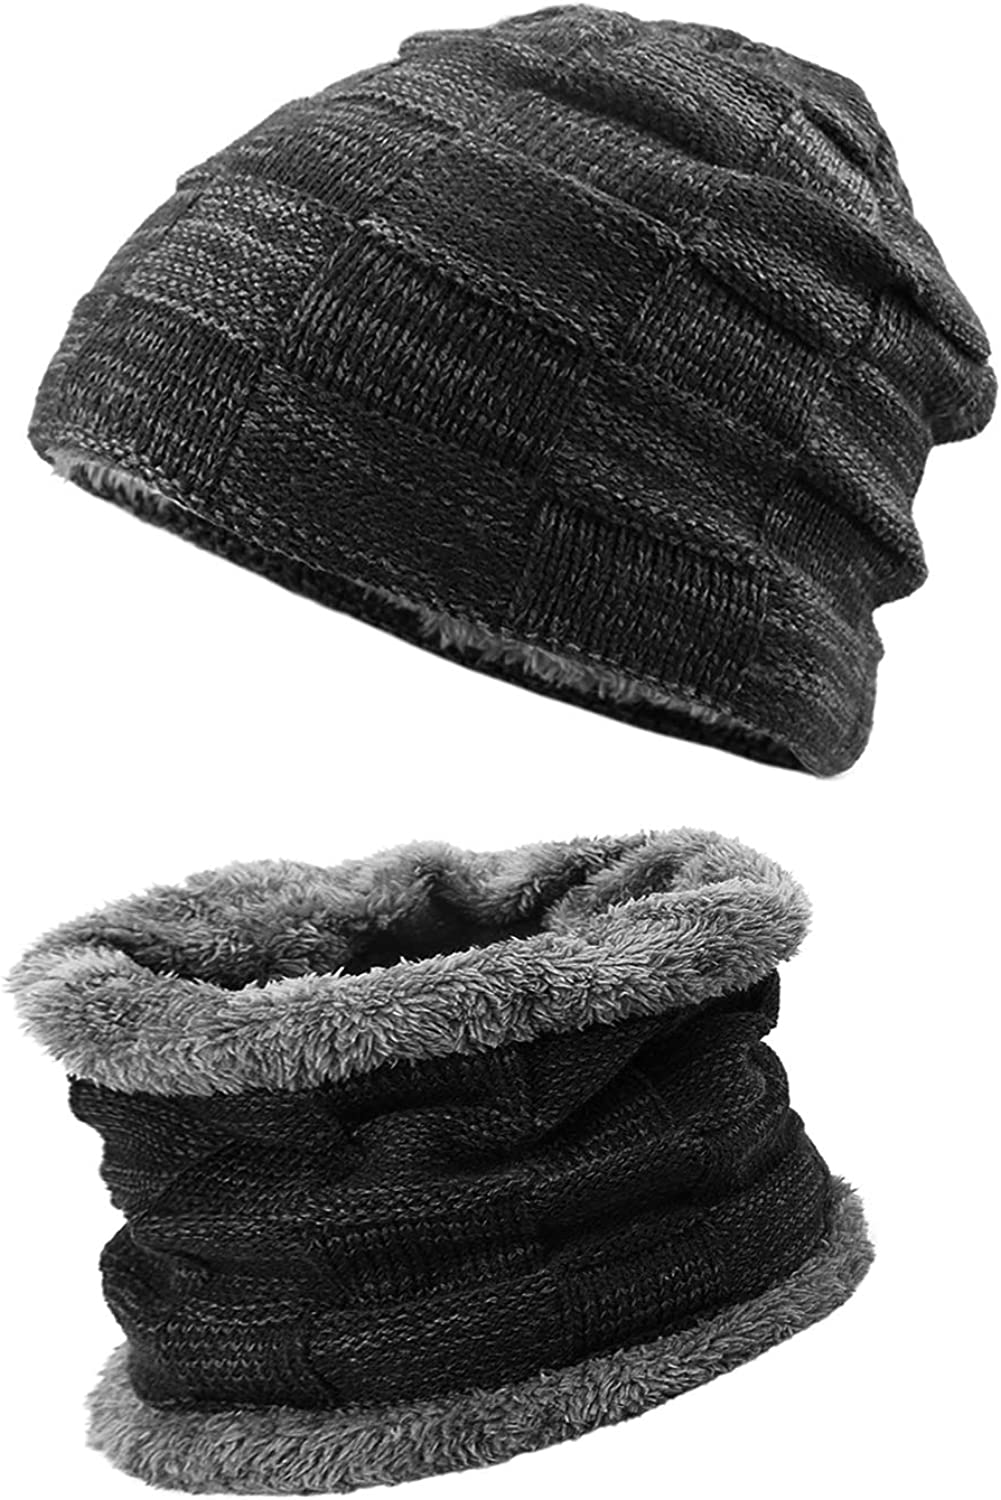 Afinder Girls Boys Cold Weather Elastic Windproof Balaclava Knitted Beanie Ear Flap Hat with Neckerchief Scarf for Ski Snowboarding Cycling Travel